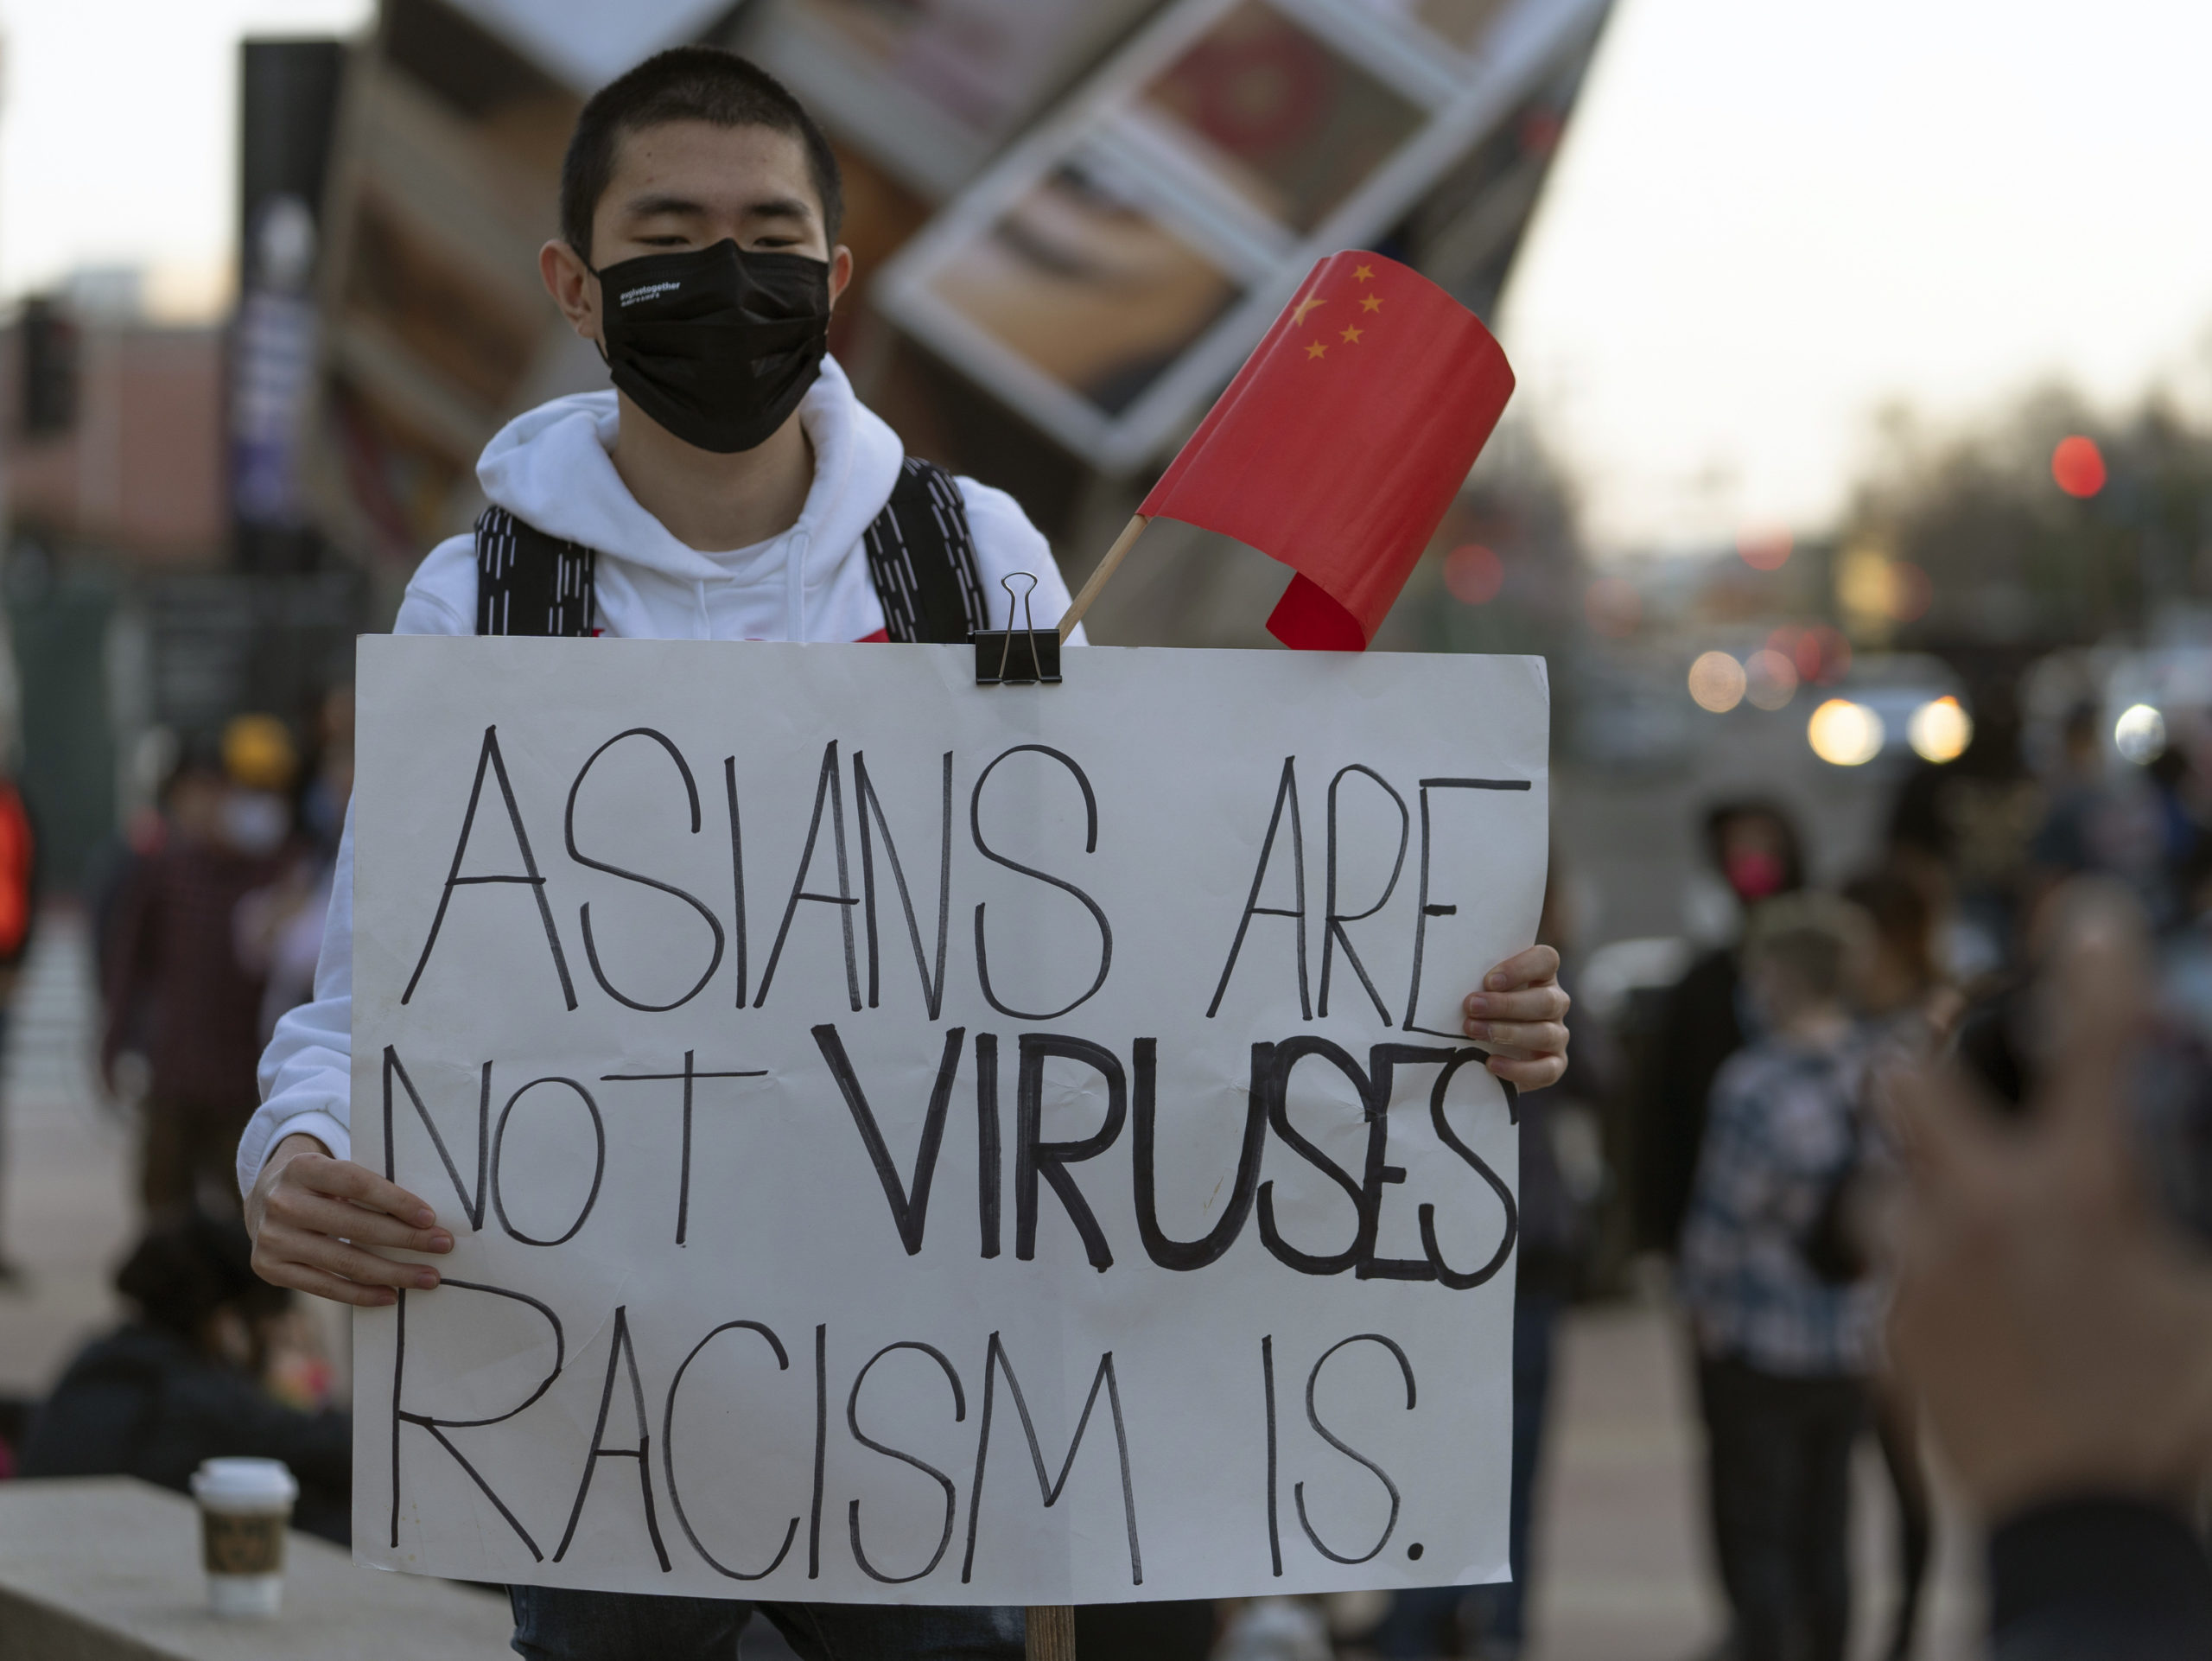 universe.byu.edu: Utah not immune to anti-Asian hate, but barriers to reporting are strong